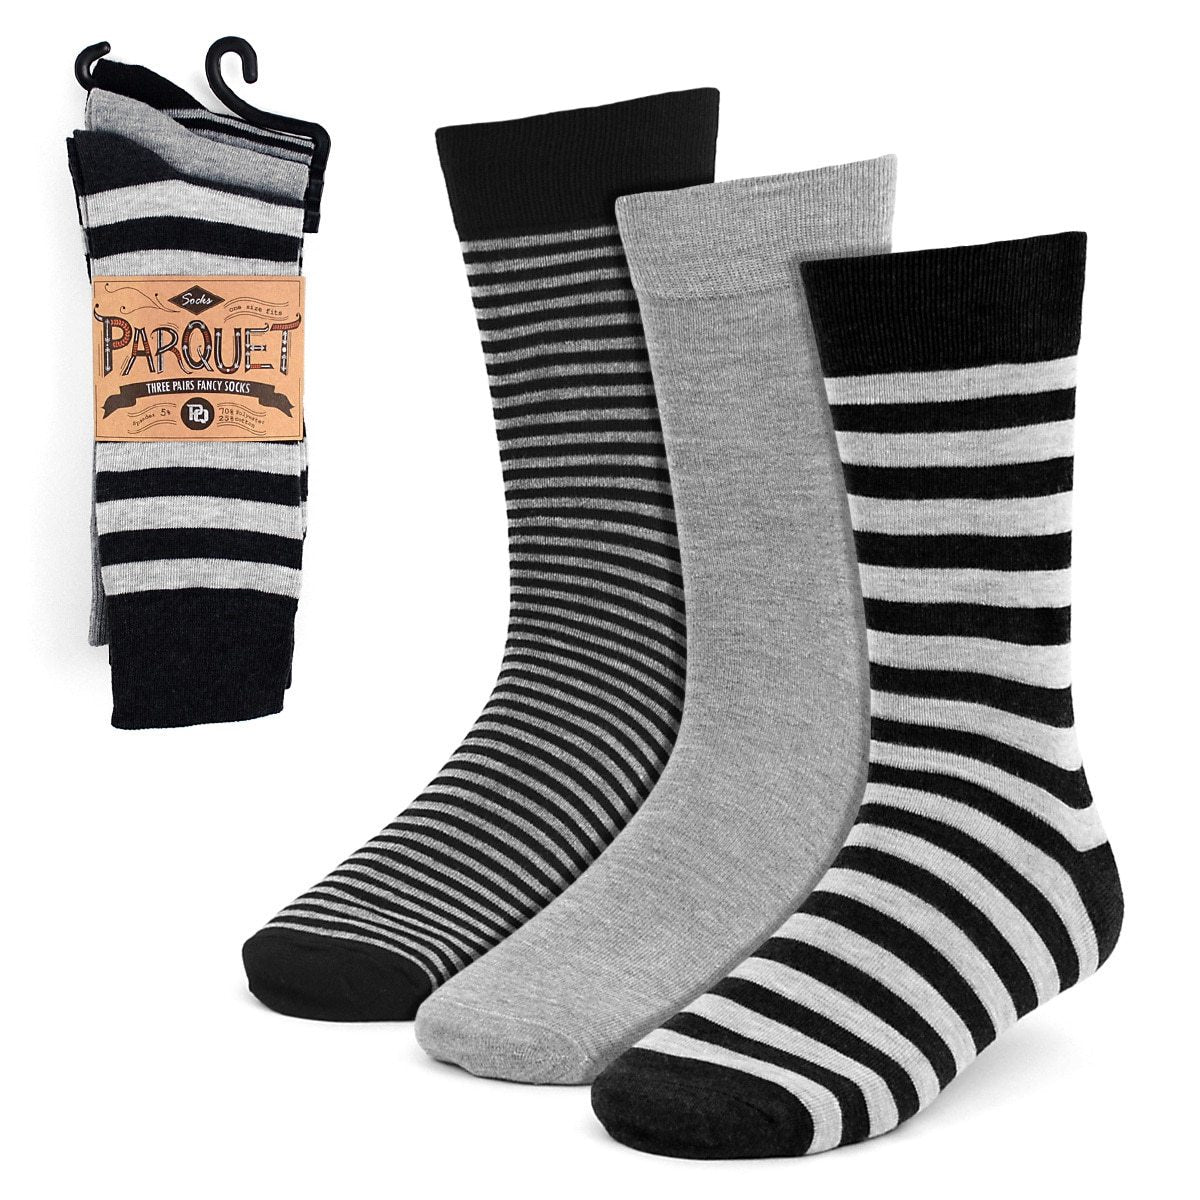 Dress Socks 3PKS-DRSY3 - Church Suits For Less